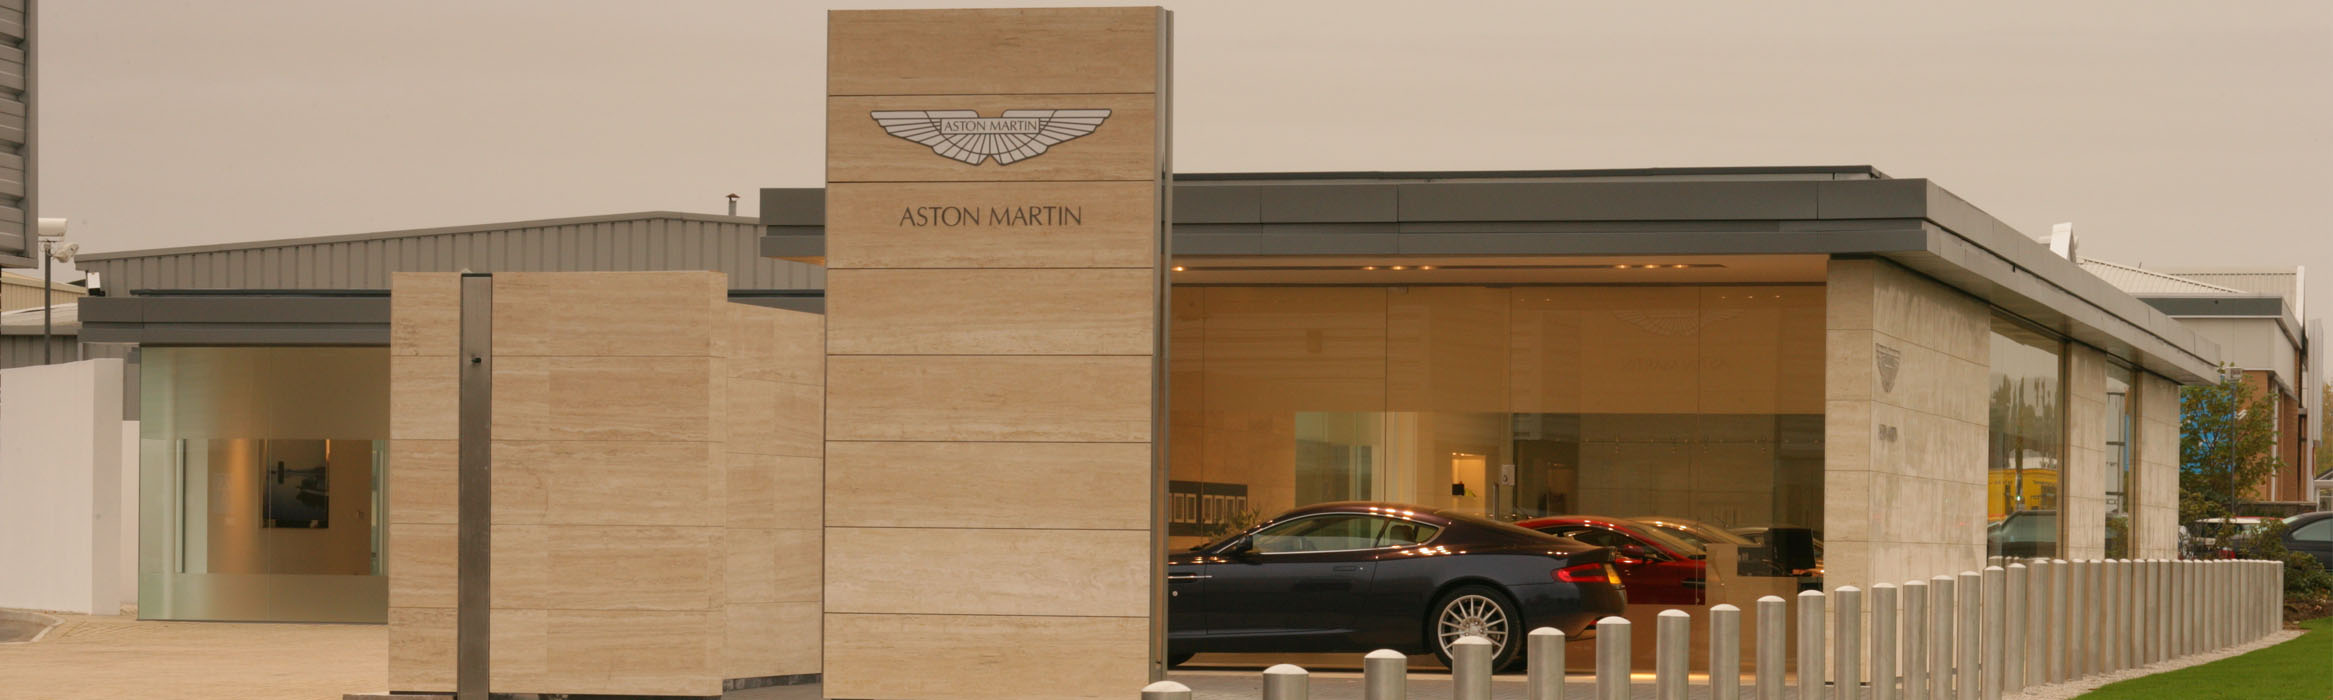 Aston Martin Cheltenham Official Aston Martin Dealer - Aston martin dealerships